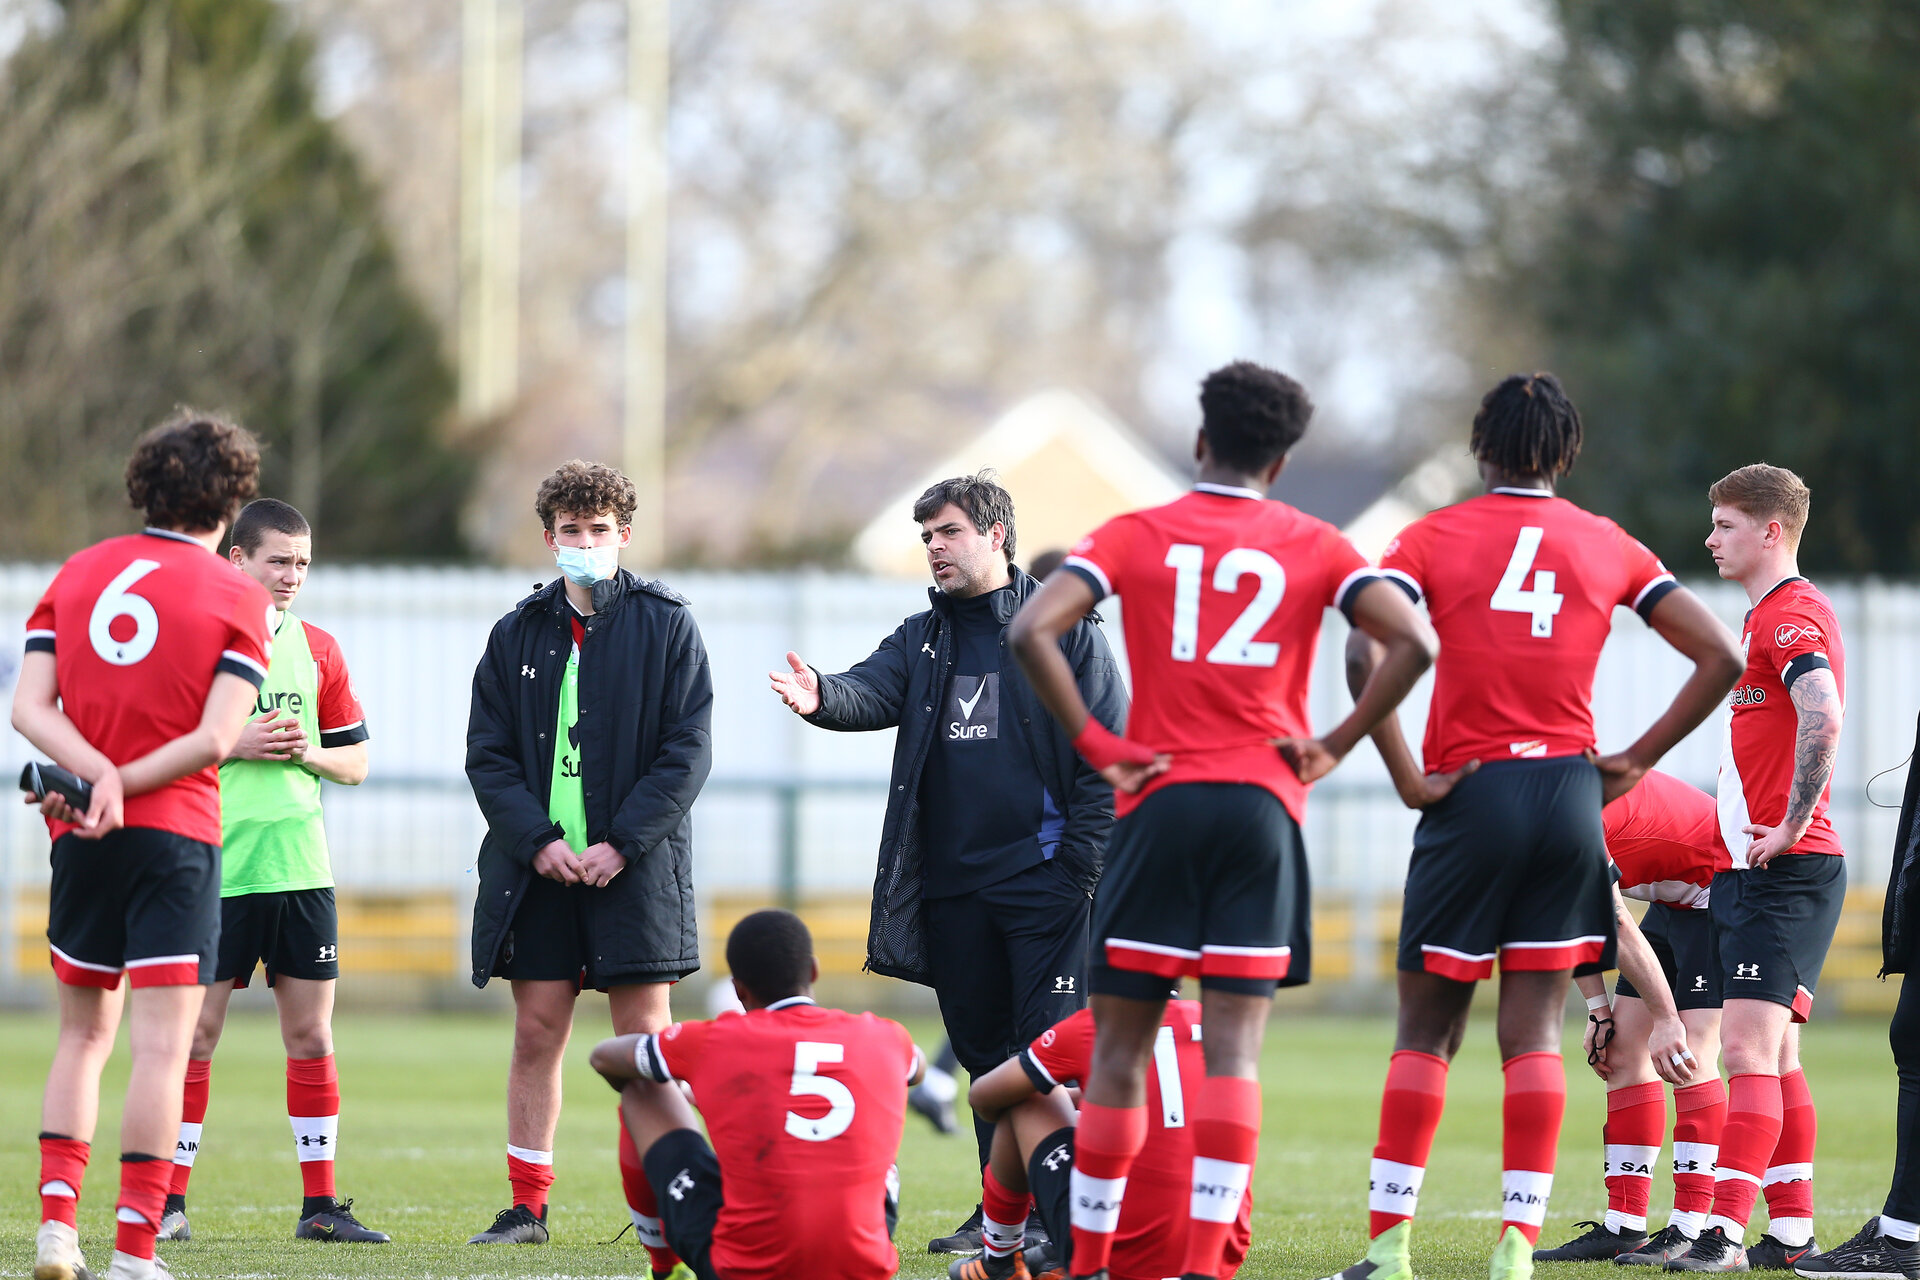 SOUTHAMPTON, ENGLAND - MARCH 21: David Horseman Southampton B Team head coach talking to players at the end of the Premier League 2 match between Southampton B Team and Liverpool at the Snows Stadium on March 21, 2021 in Southampton, England.  (Photo by Isabelle Field/Southampton FC via Getty Images)